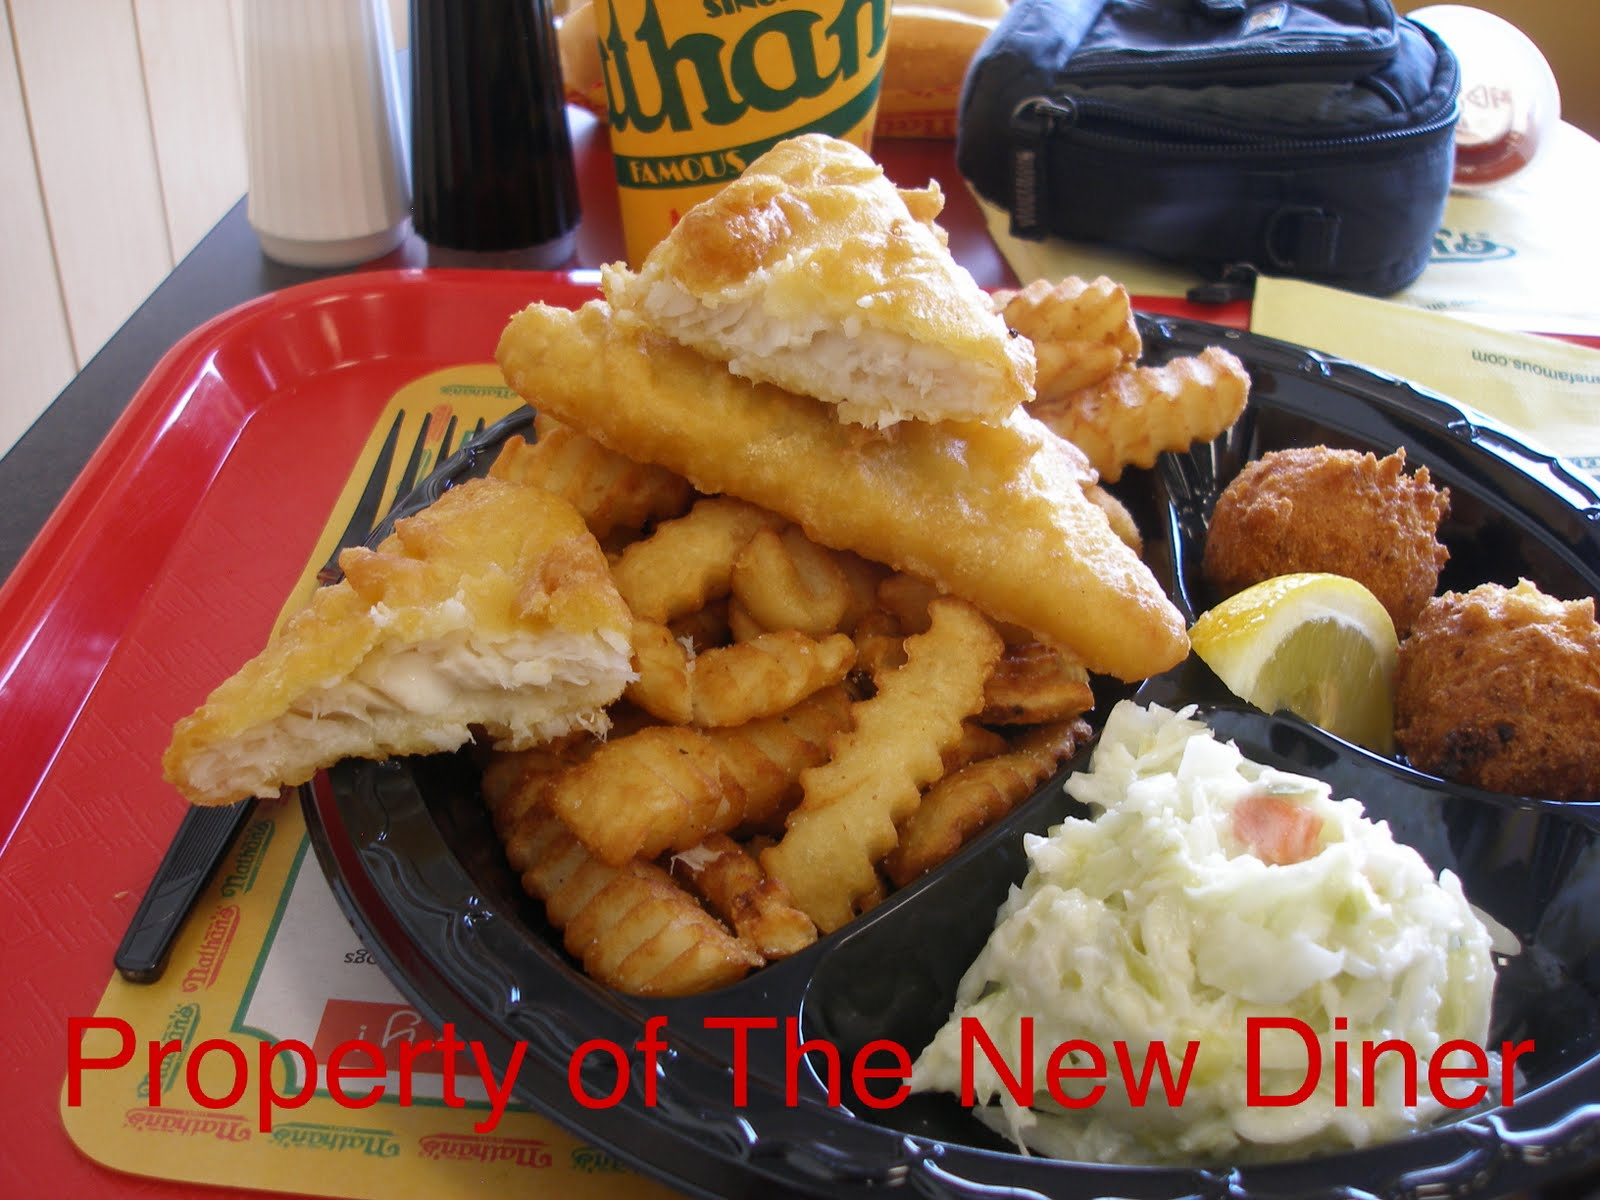 The new diner arthur treacher 39 s nathan 39 s famous hot dogs for Arthur treachers fish and chips